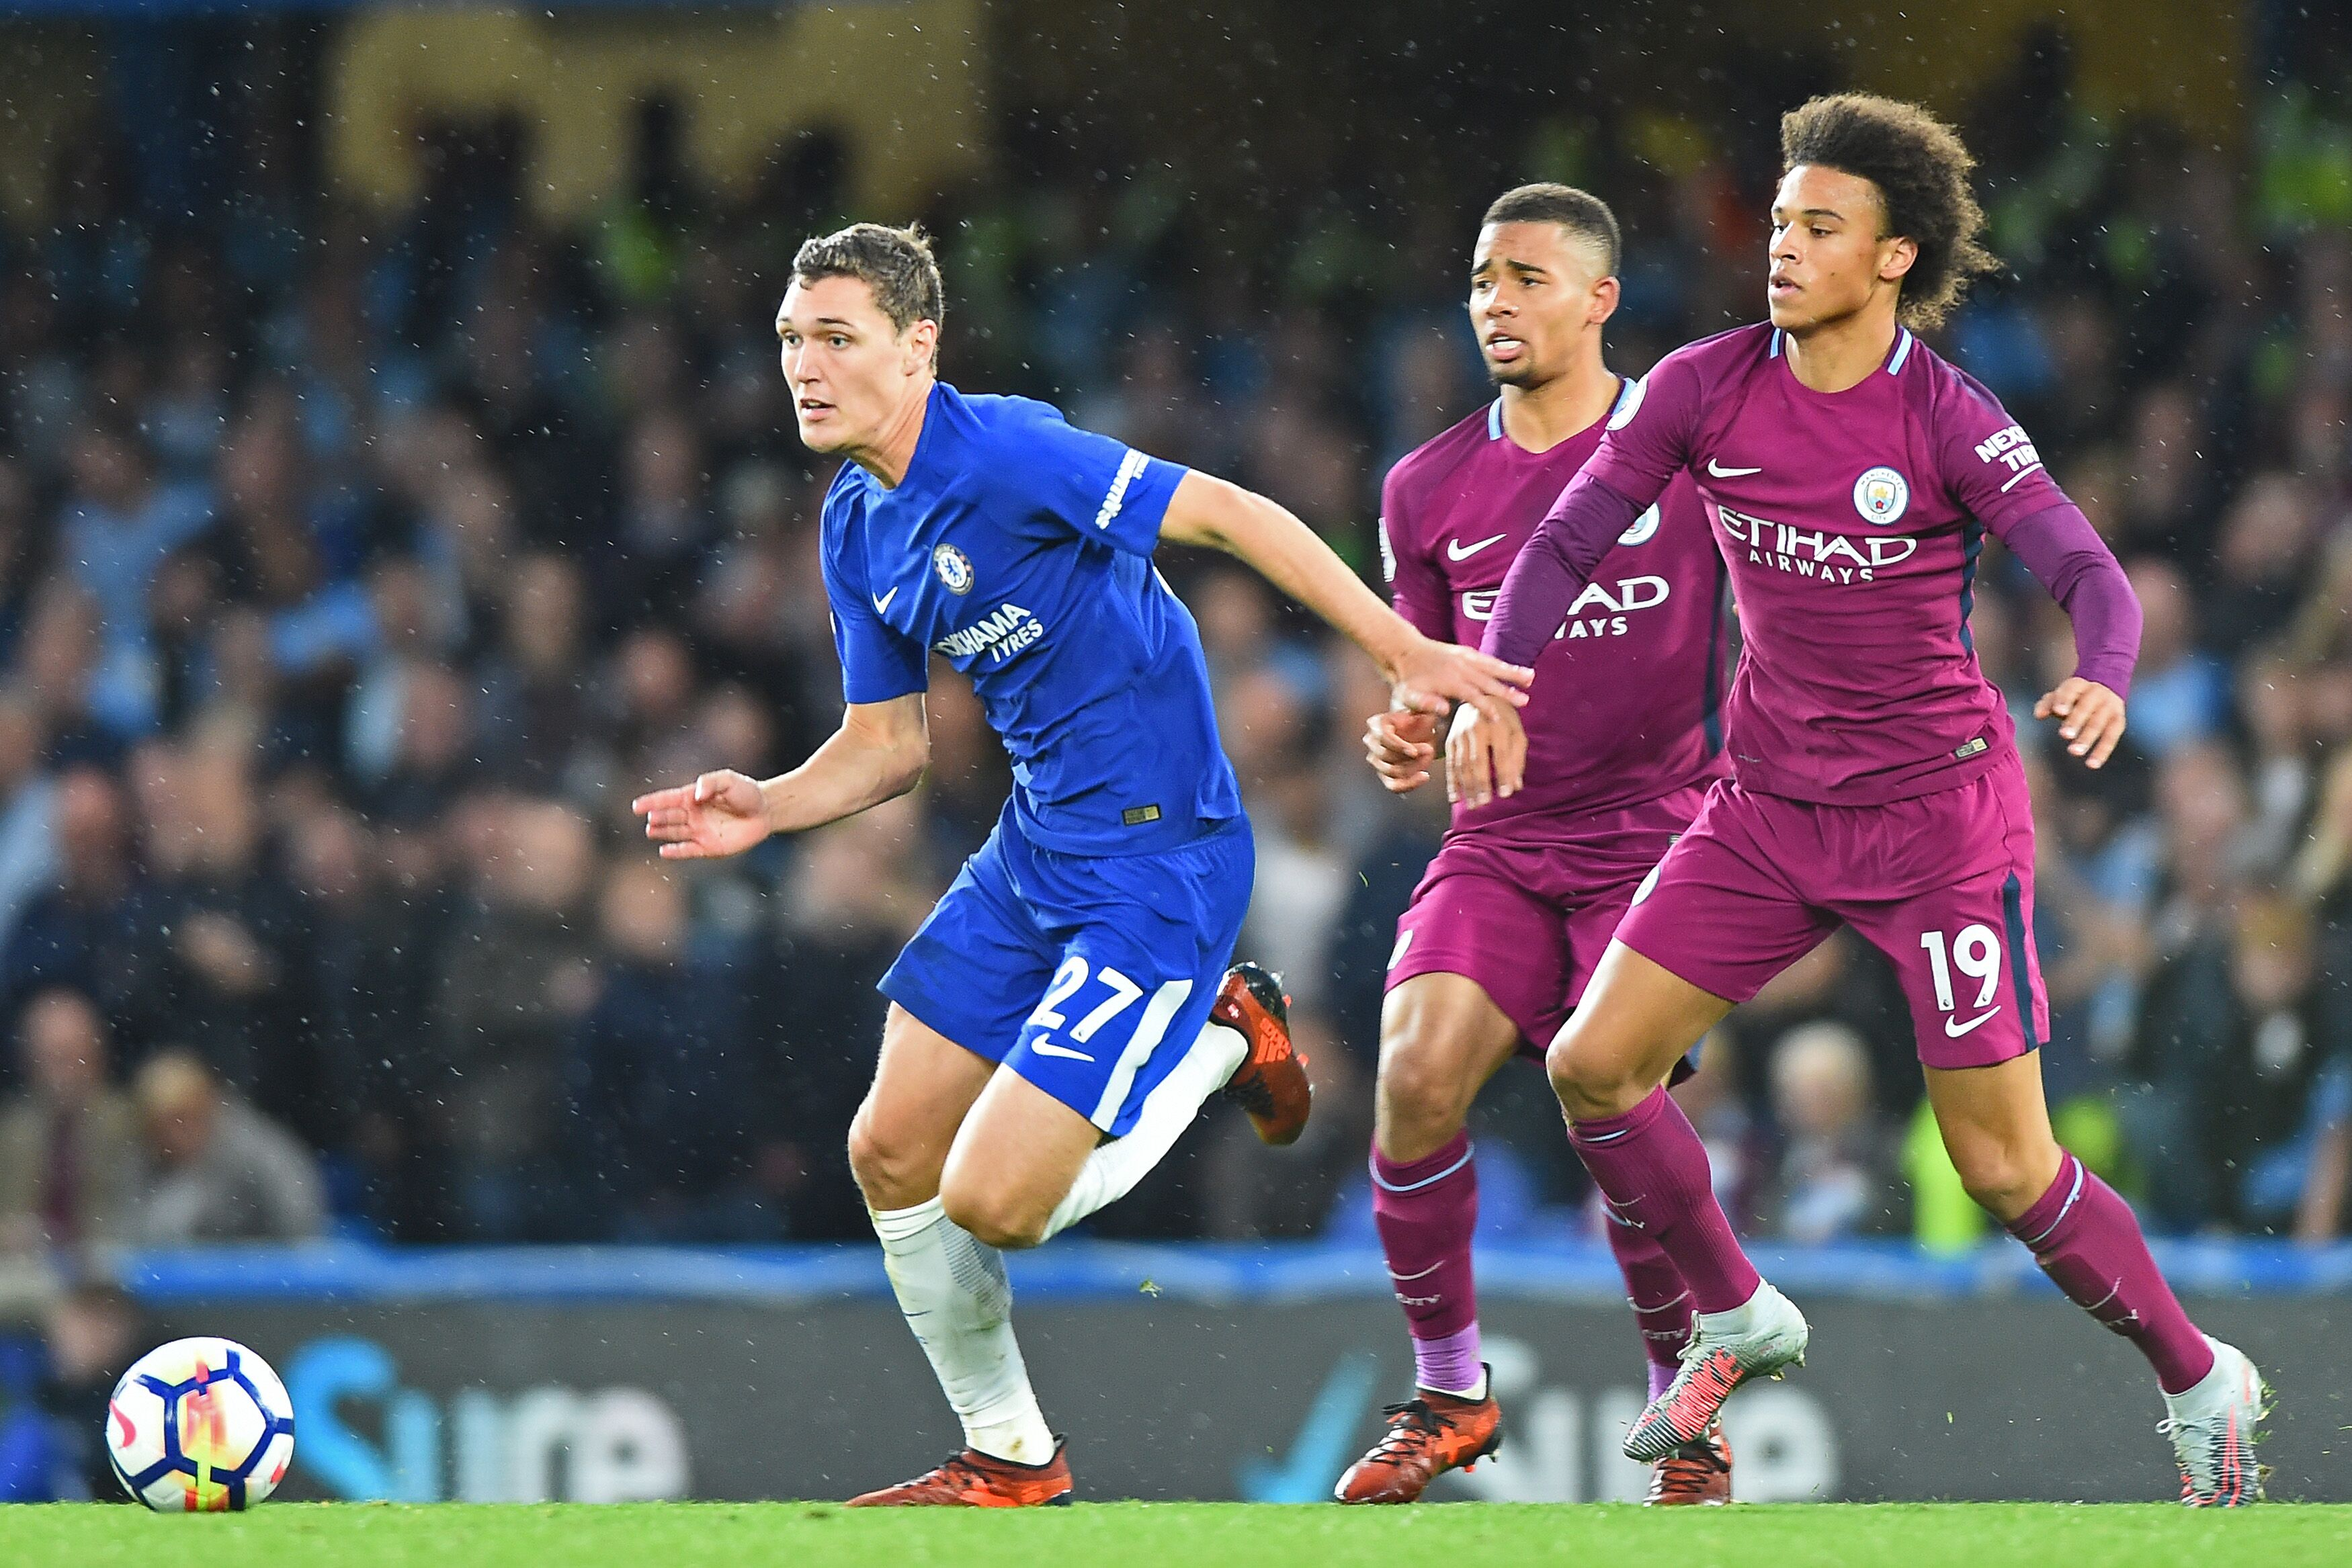 Live Streaming Manchester City Vs Chelsea: Manchester City Vs. Chelsea Live Stream: Watch Premier